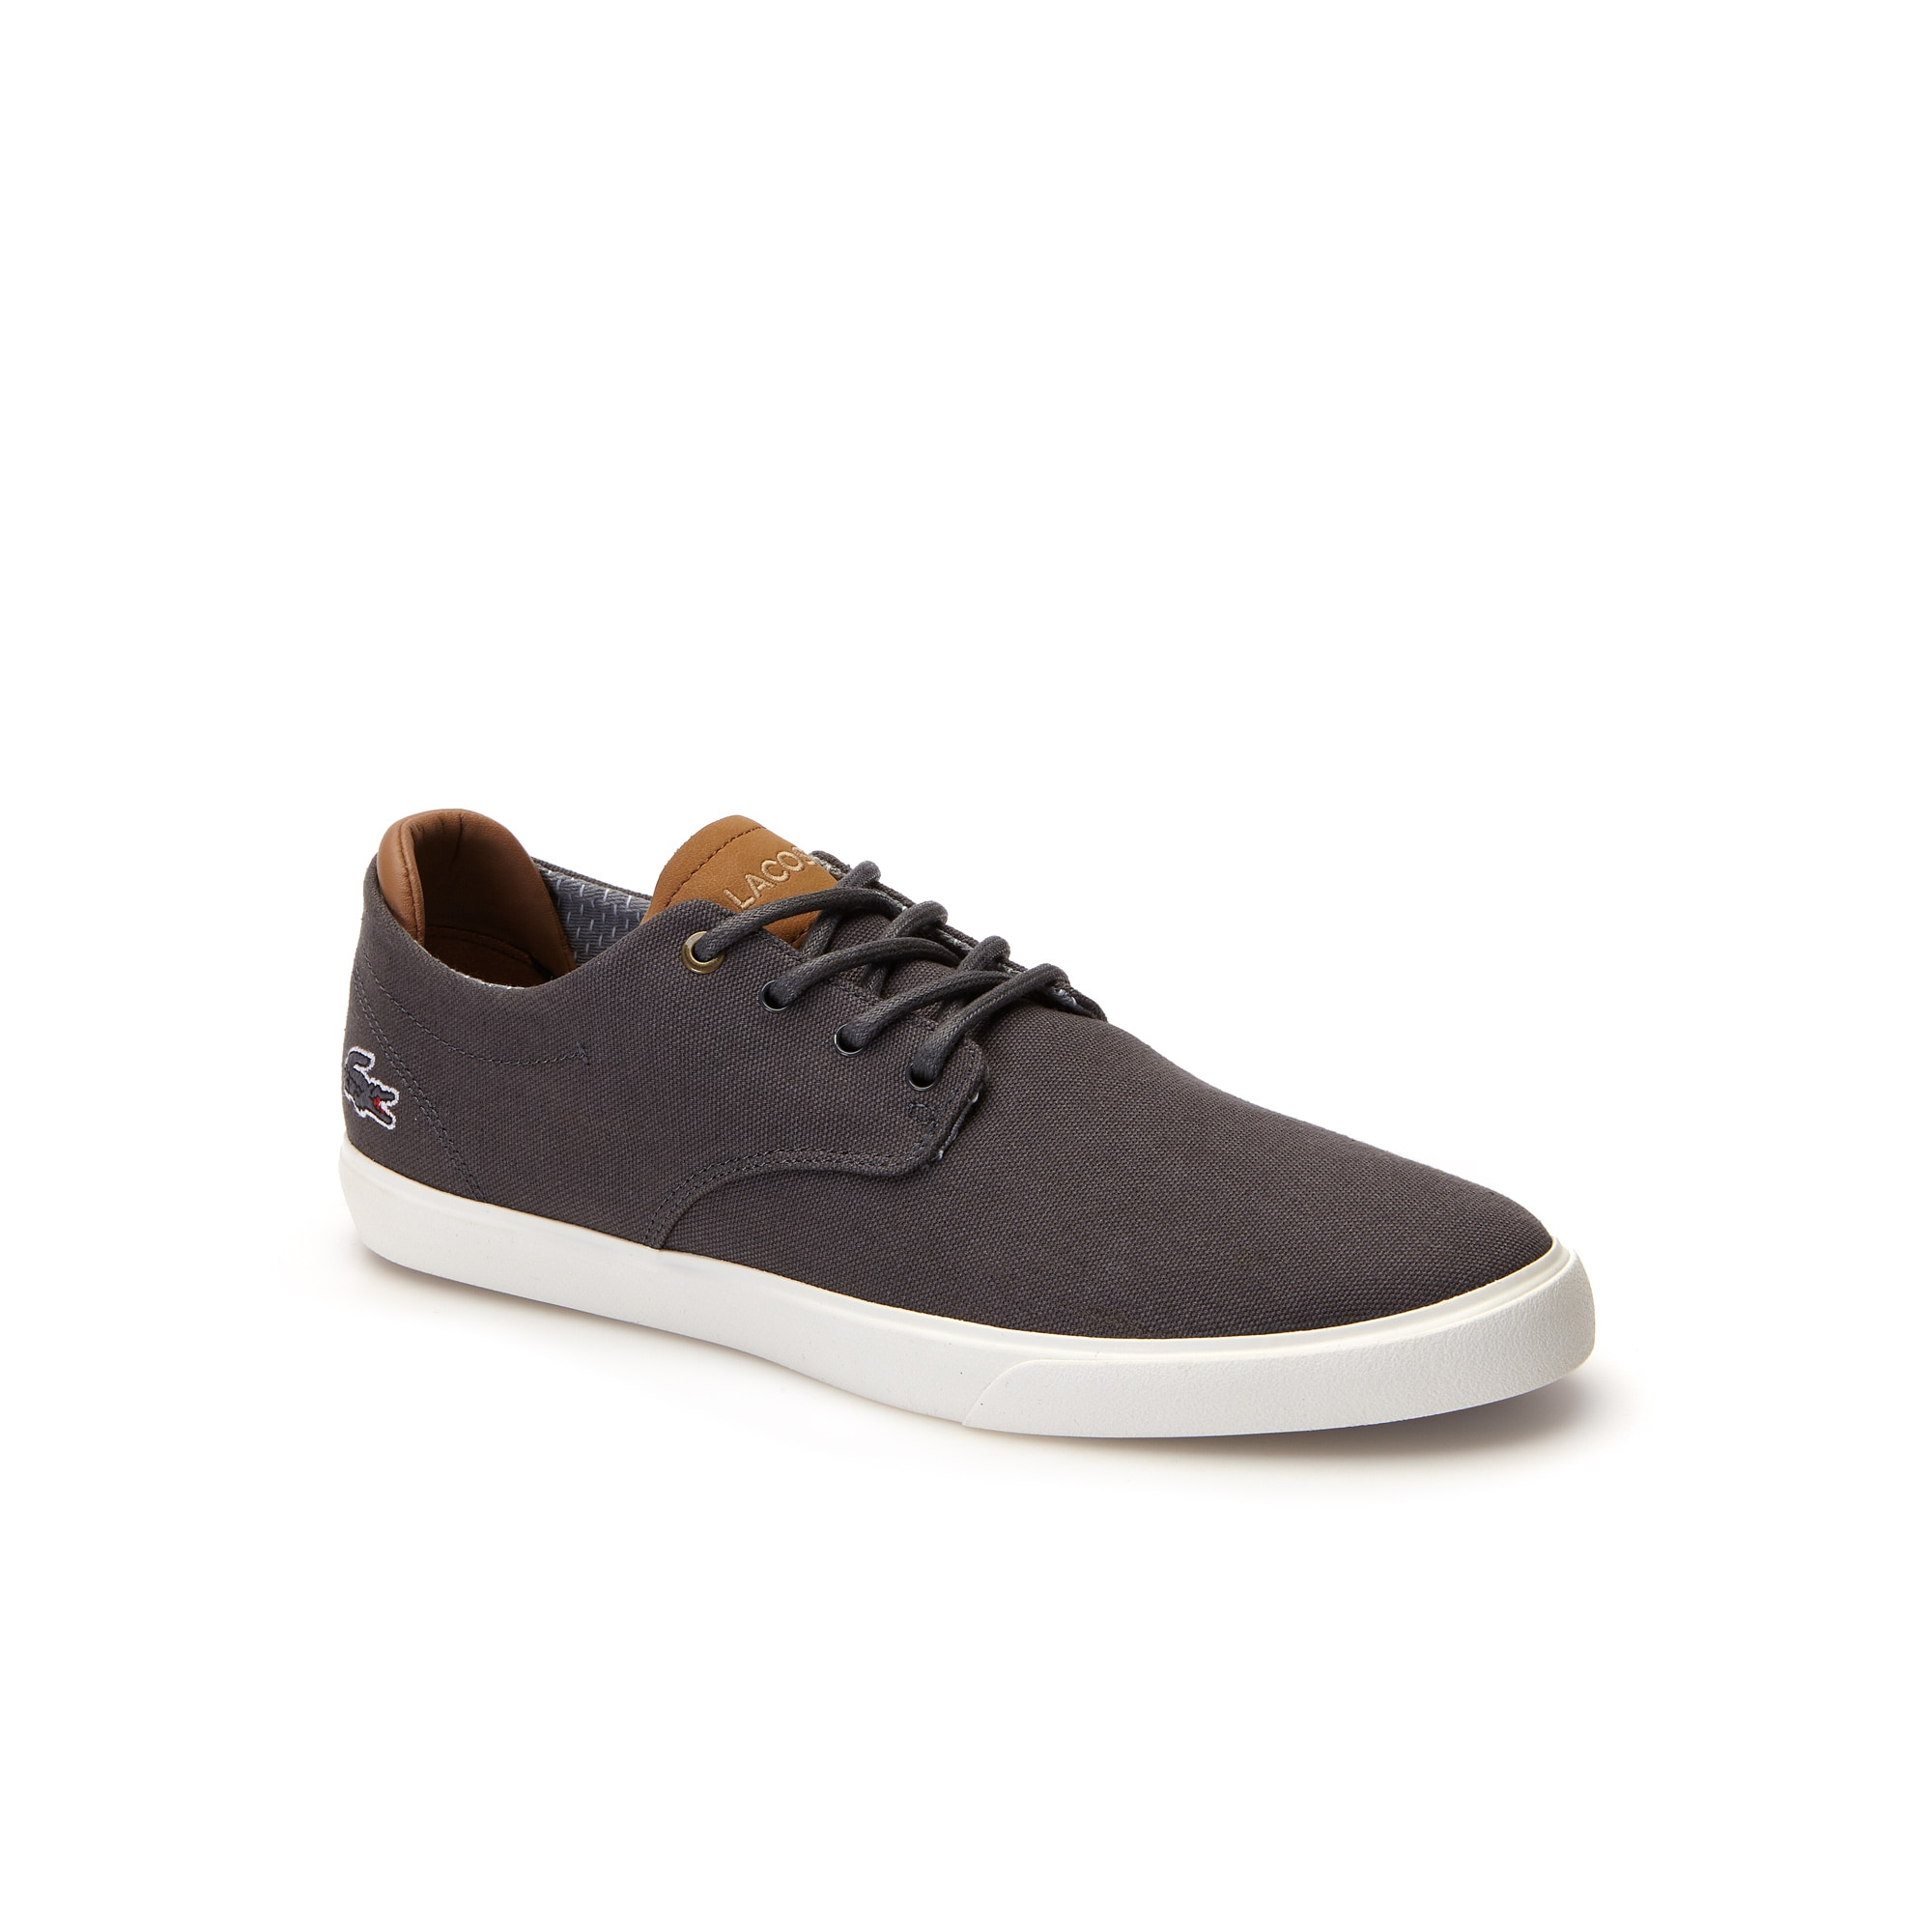 Men's Esparre Canvas Sneakers